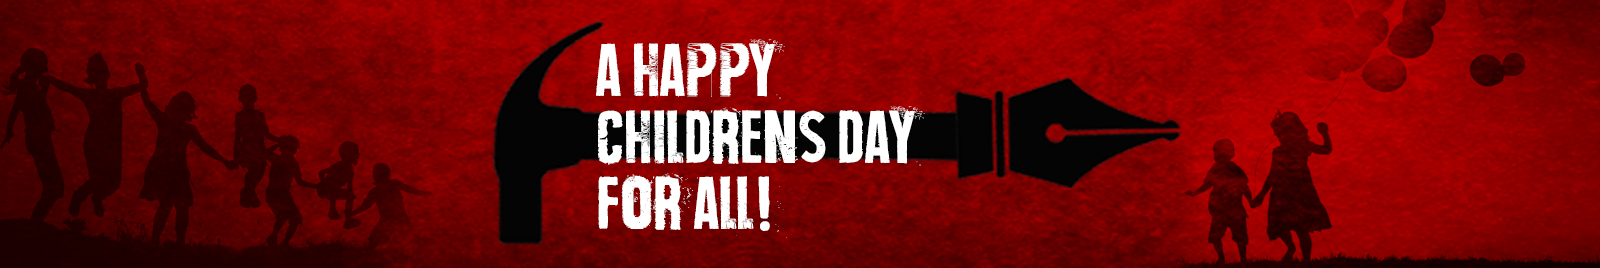 A Happy Children's Day for all!